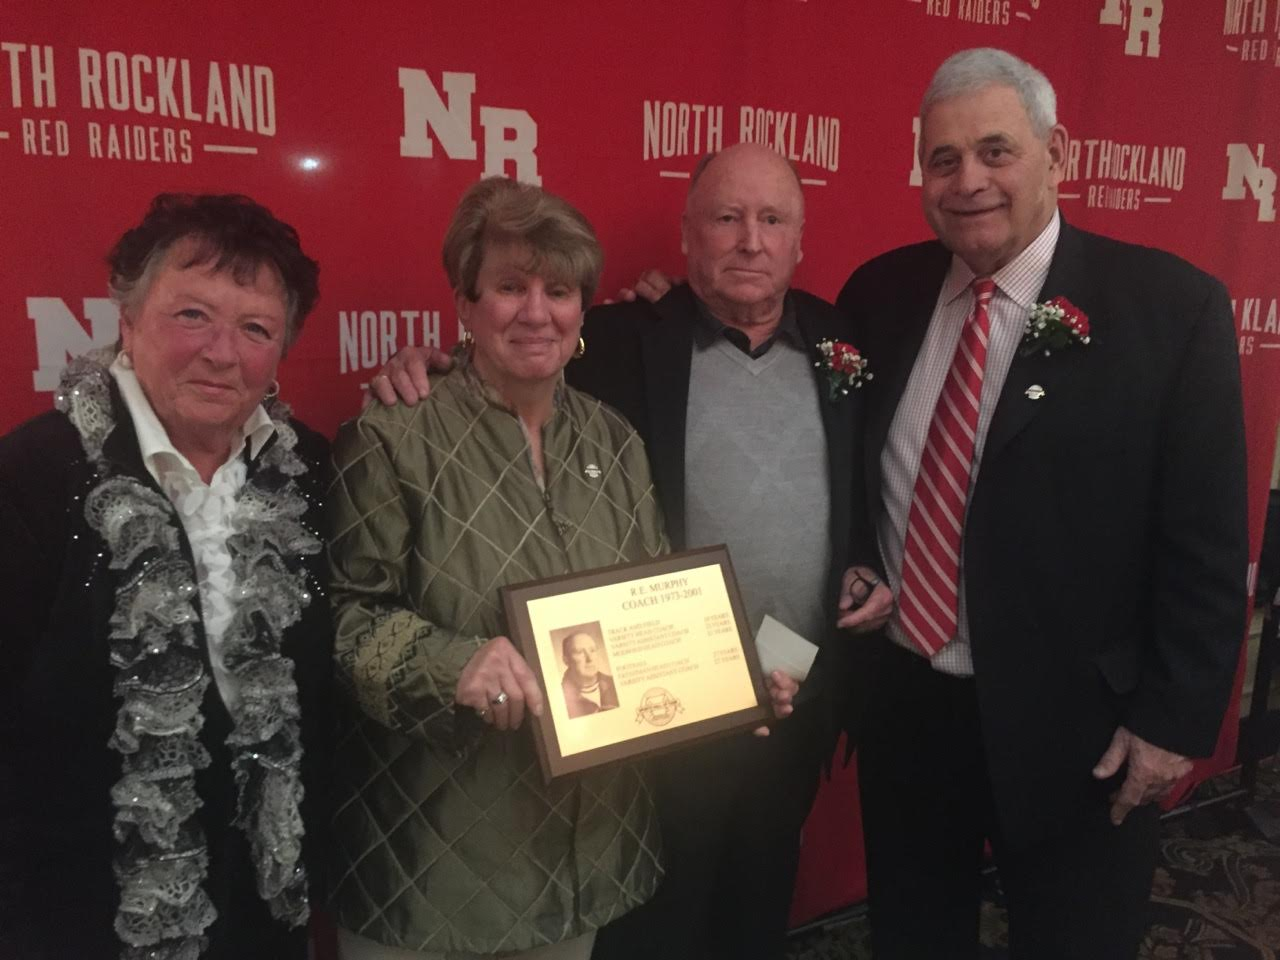 NEW SLATE INDUCTED INTO NORTH ROCKLAND HALL OF FAME [FEBRUARY]